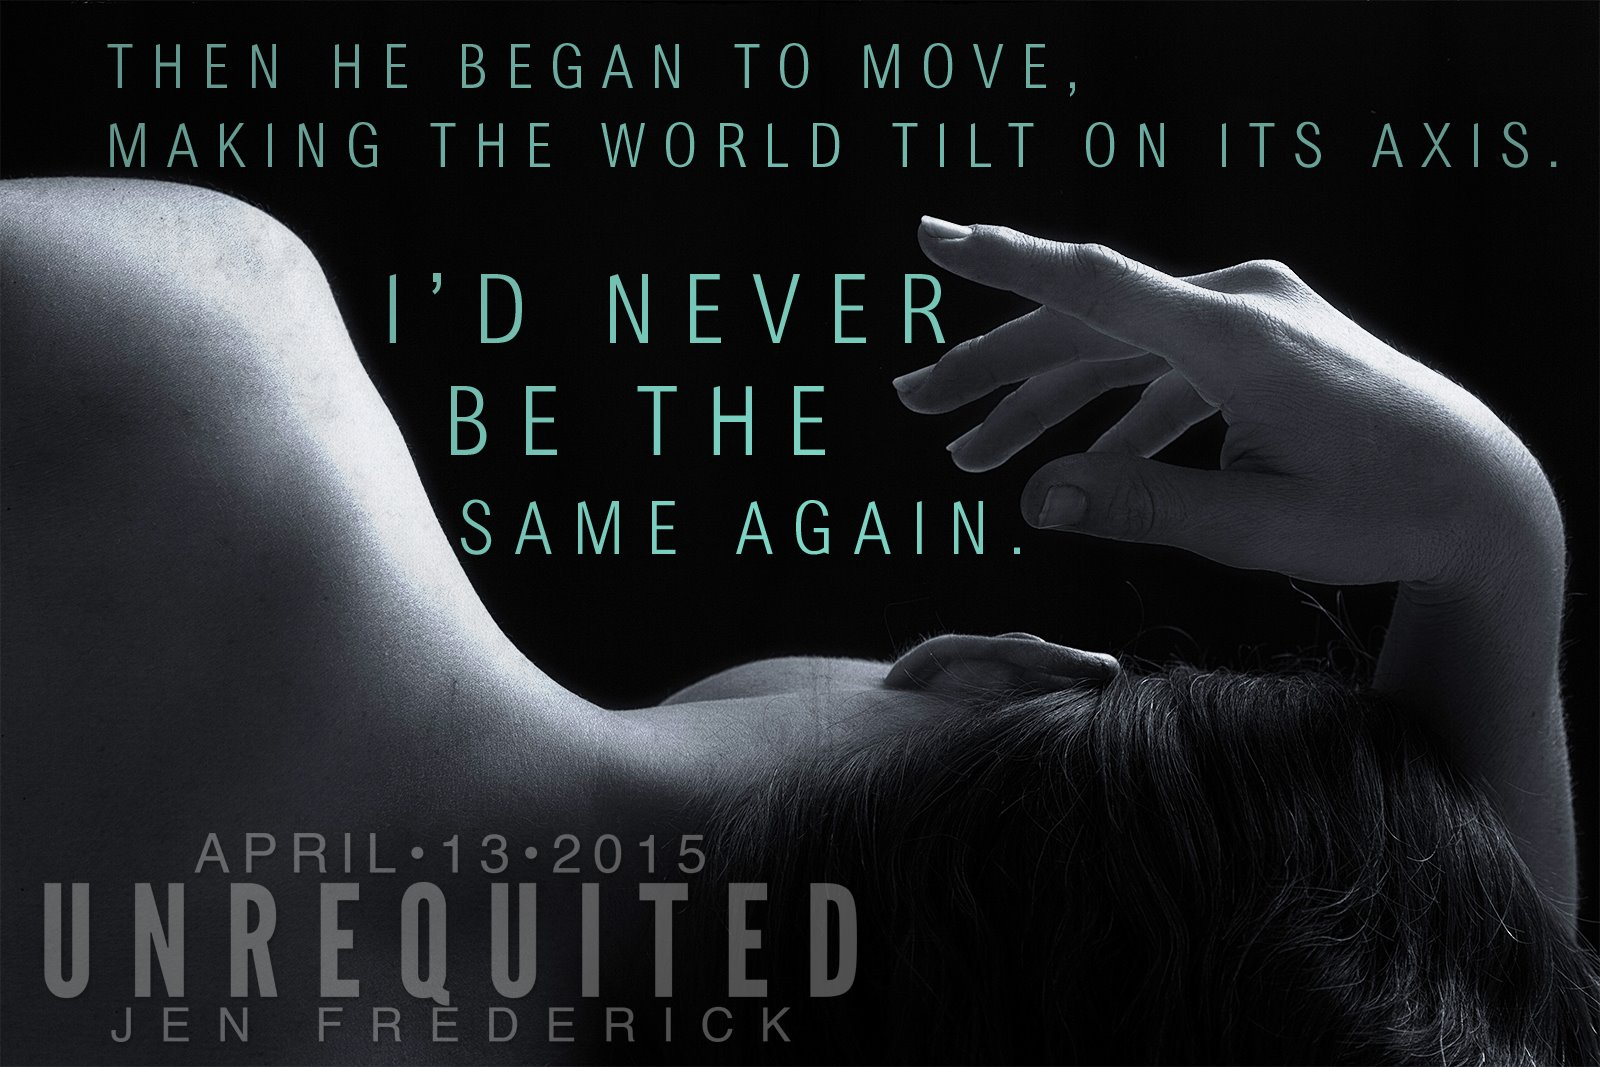 UNREQUITED TEASER NEW.jpg